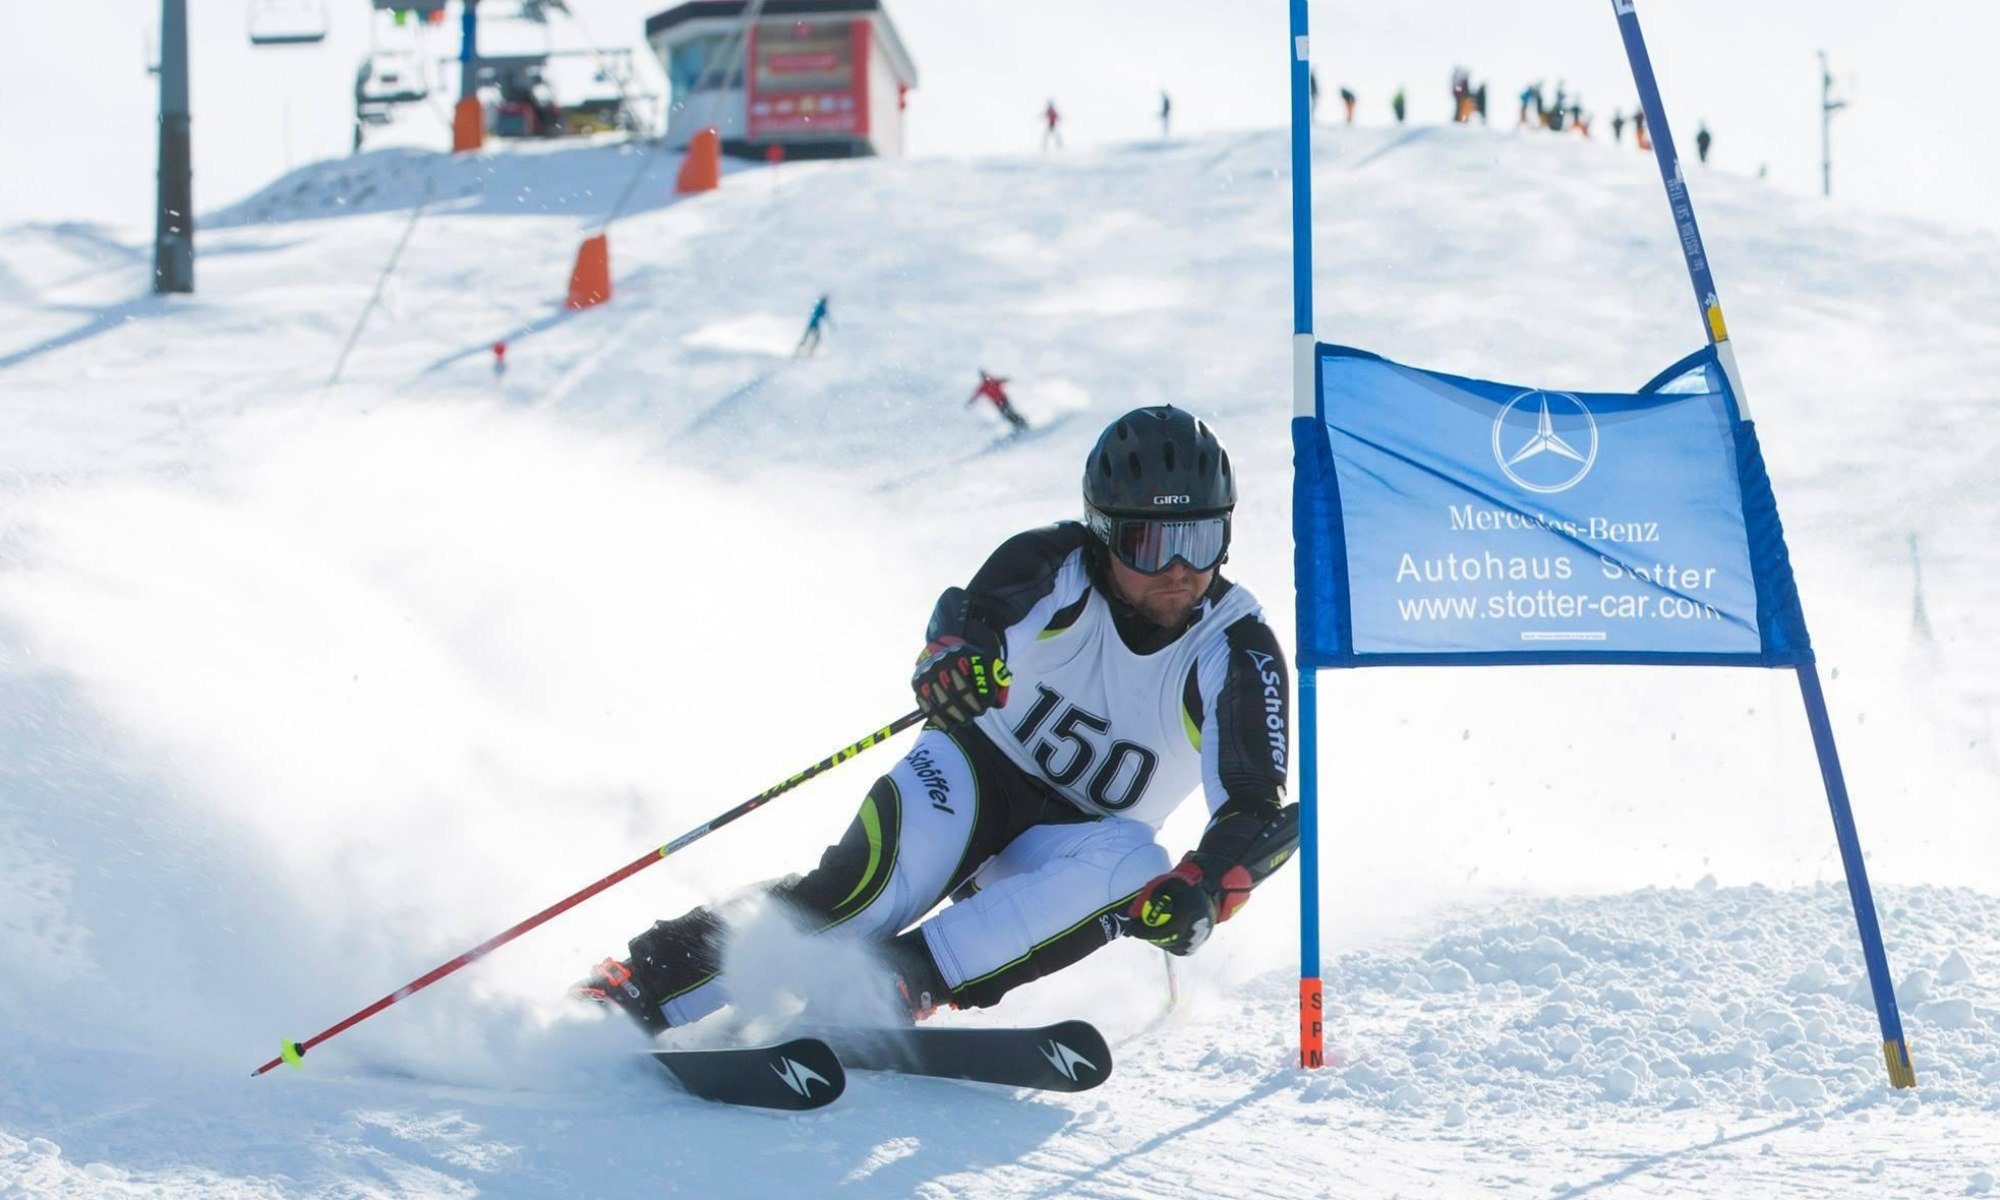 A skier sliding down a race slope.